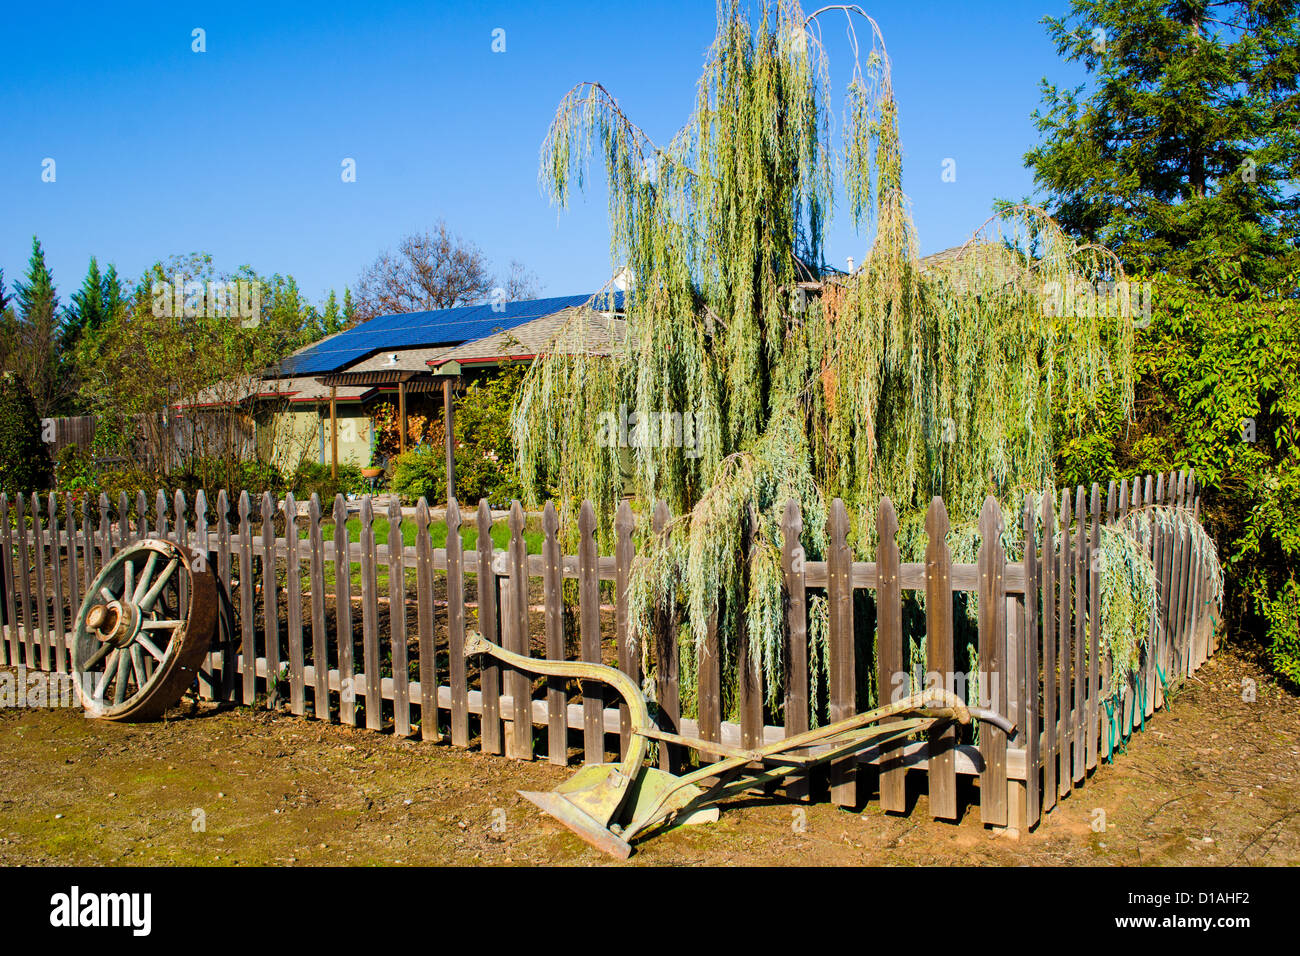 Wagon Wheel And Old Plow As Yard Art In Front Of A Picket Fence And Stock Photo Alamy